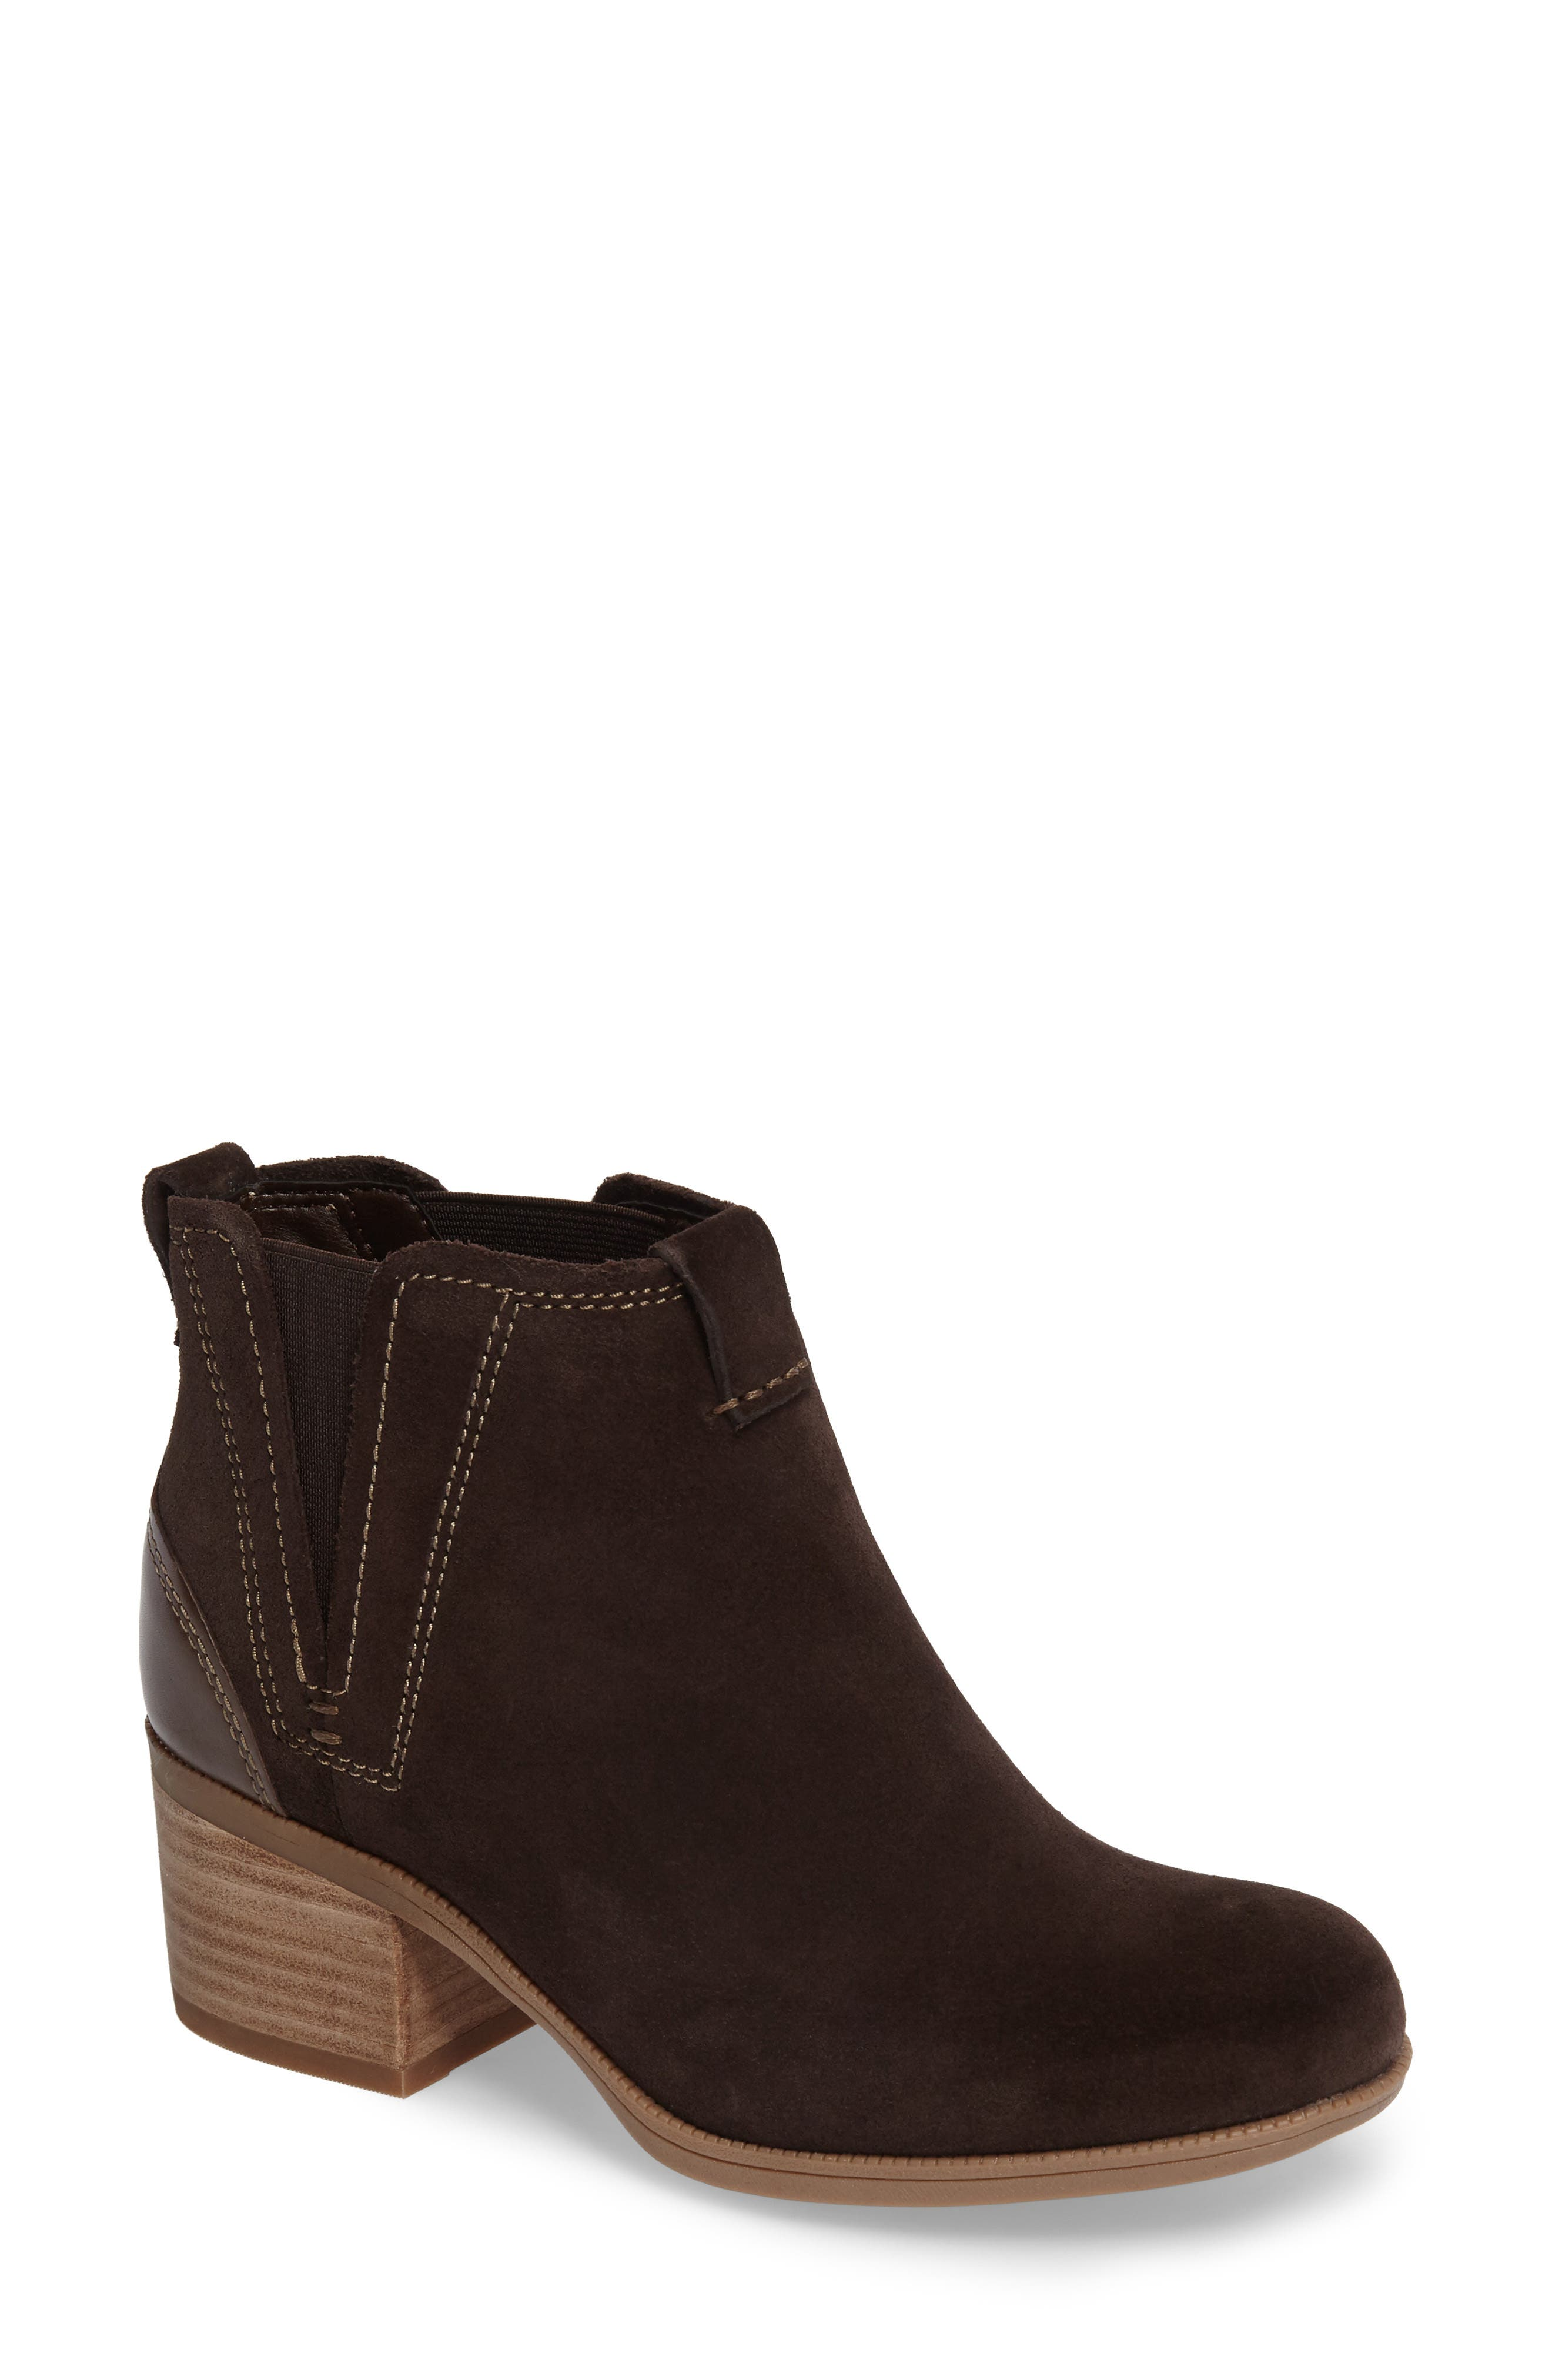 Maypearl Daisy Bootie,                         Main,                         color, Dark Brown Suede